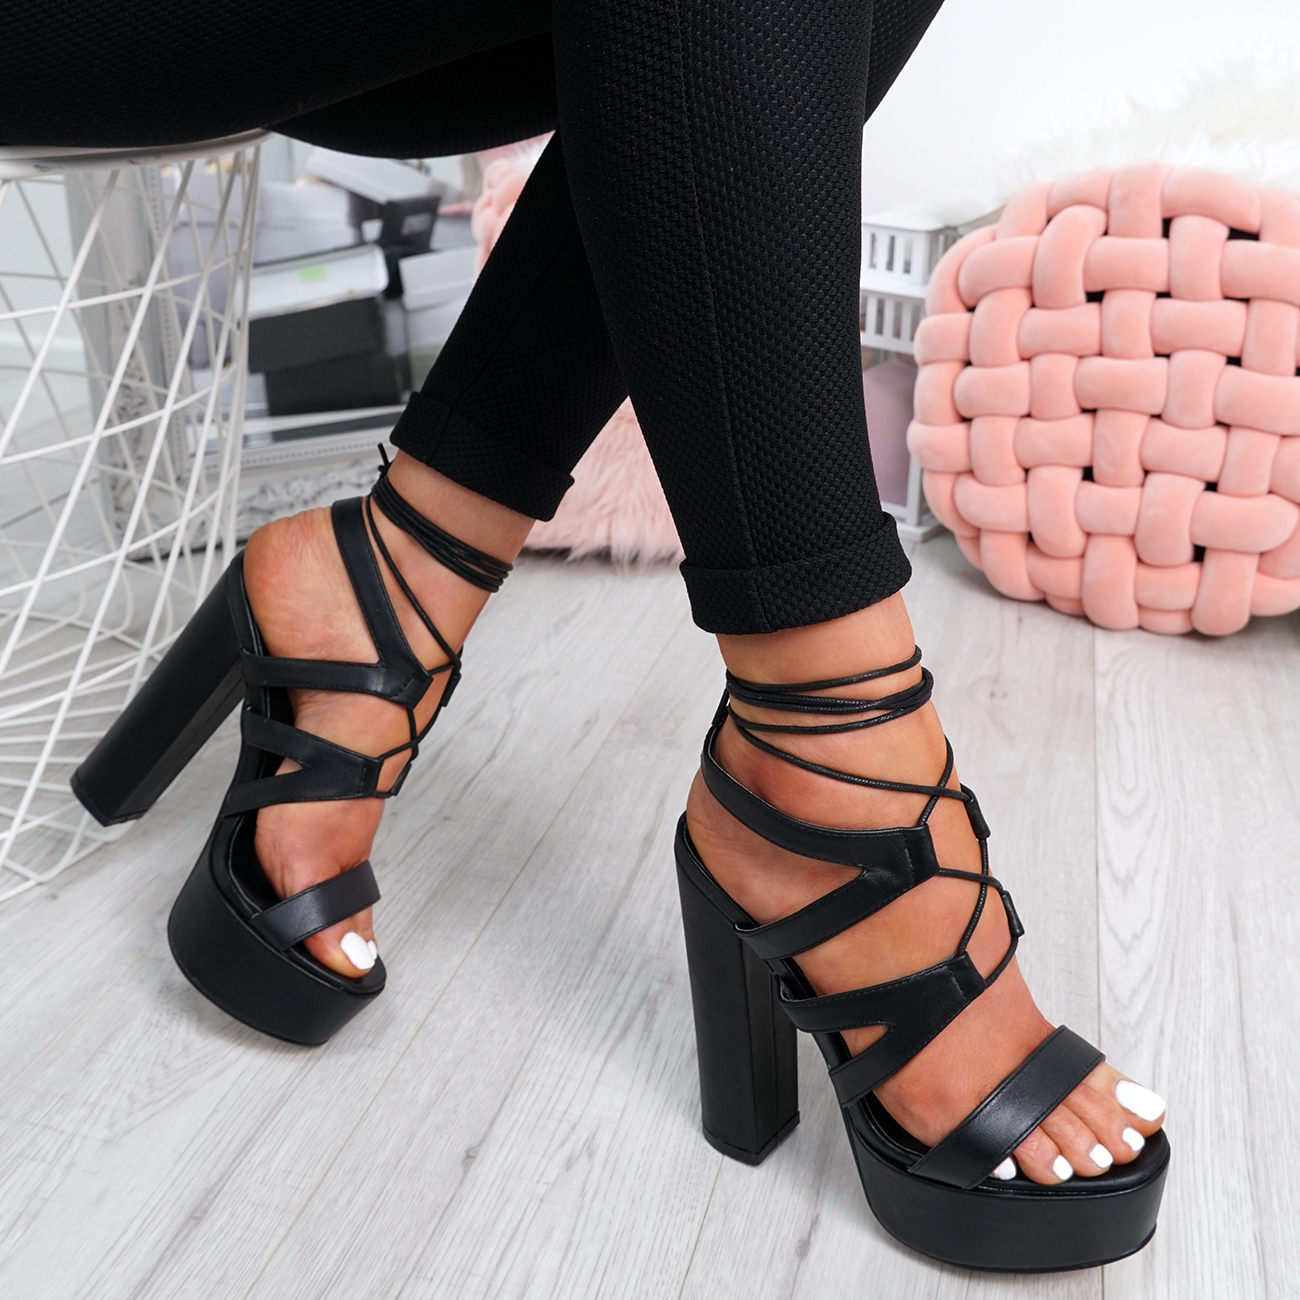 Ladies-Cross-Lace-High-Block-Heel-Sandals-Womens-Platforms-Peep-Toe-Shoes-Size thumbnail 4